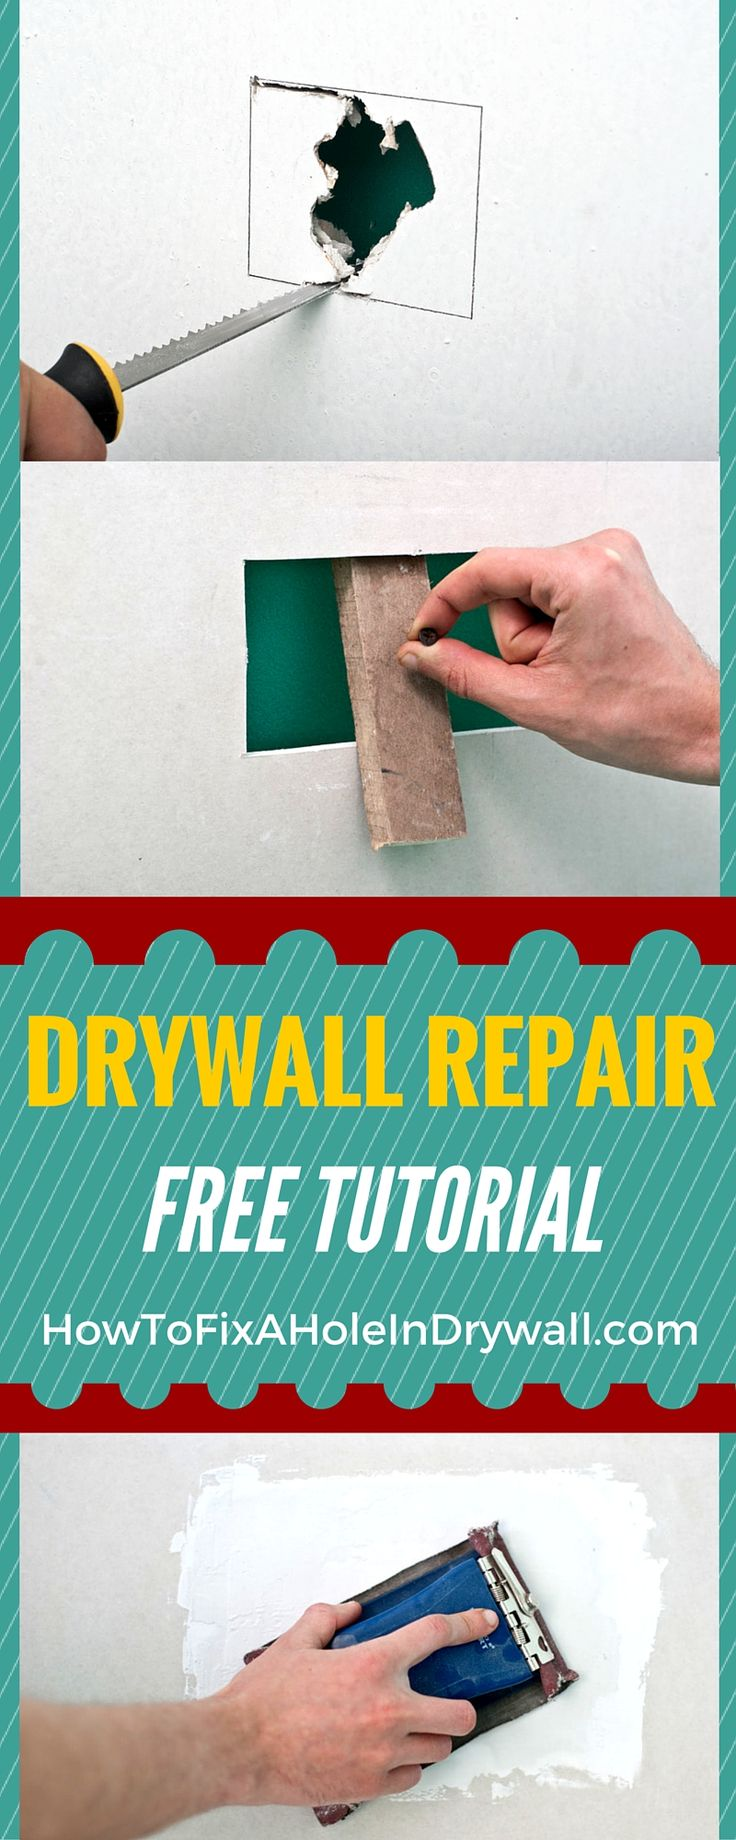 How to repair large hole in drywall - This Step By Step Project Is About How To Fix A Large Hole In Drywall Fixing A Large Hole In The Wall Is An Easy Repair Project If You Use The Right